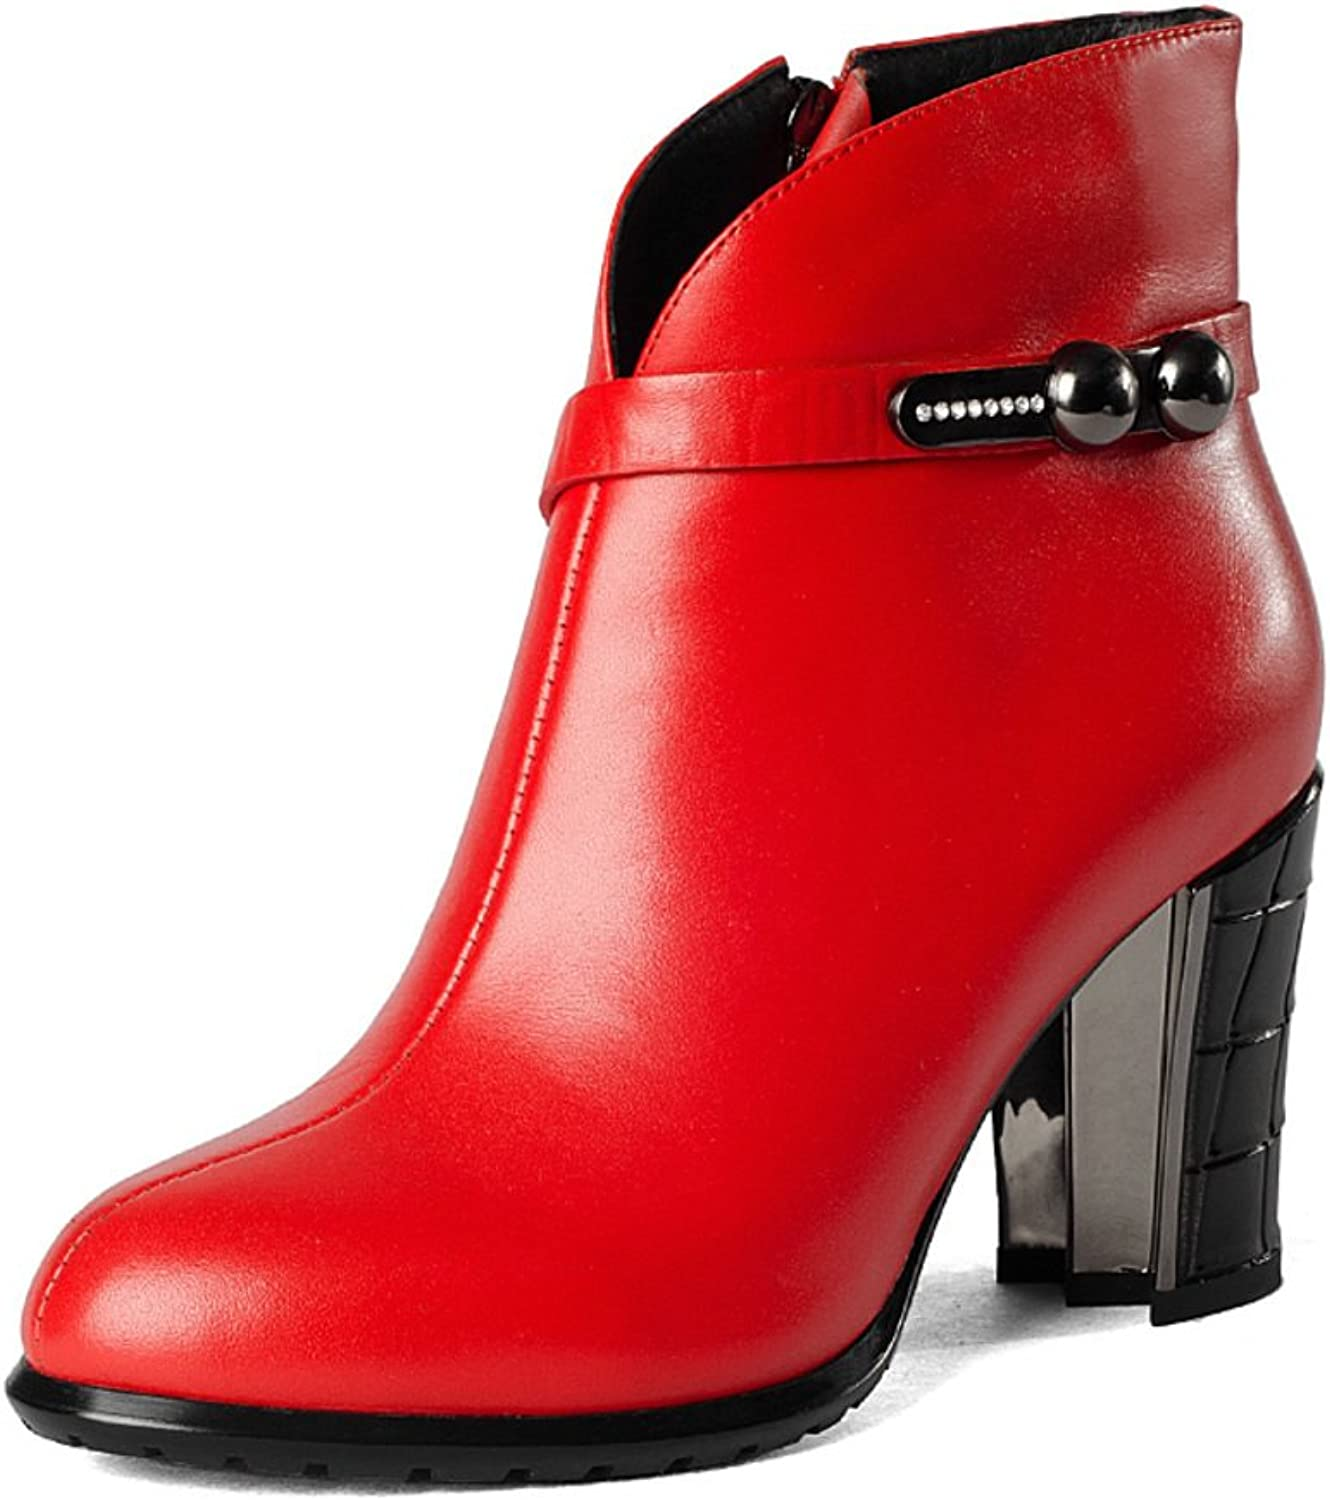 Wind of England Martin boots in winter Rough leather boots with round head spring and autumn high heel boots fashion nude boots